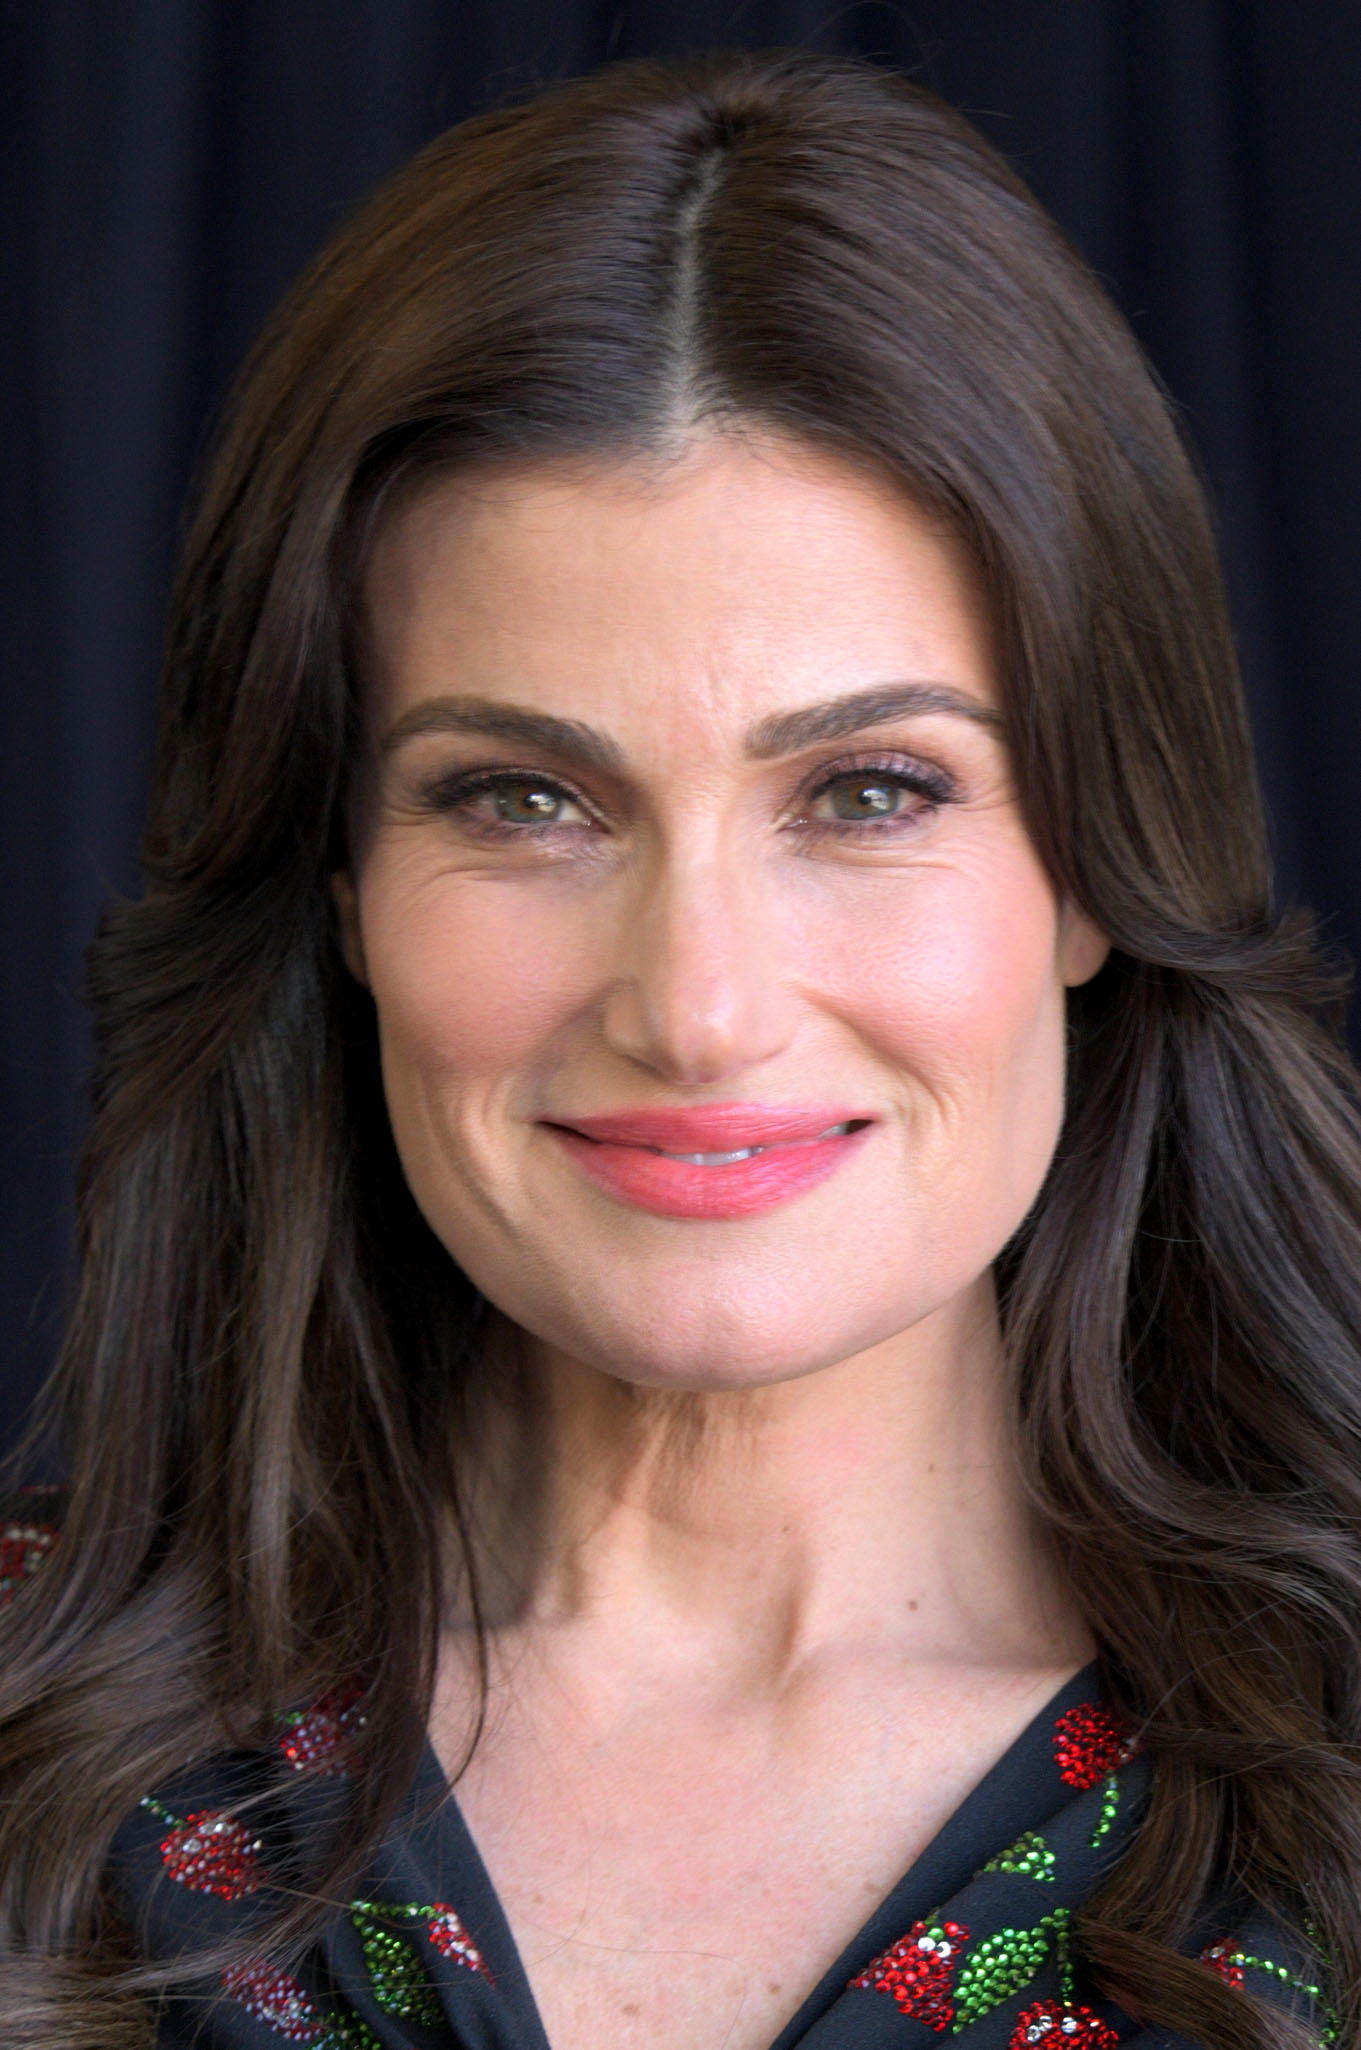 Idina Menzel at the 2020 Film Independent Spirit Awards in Santa Monica, California.